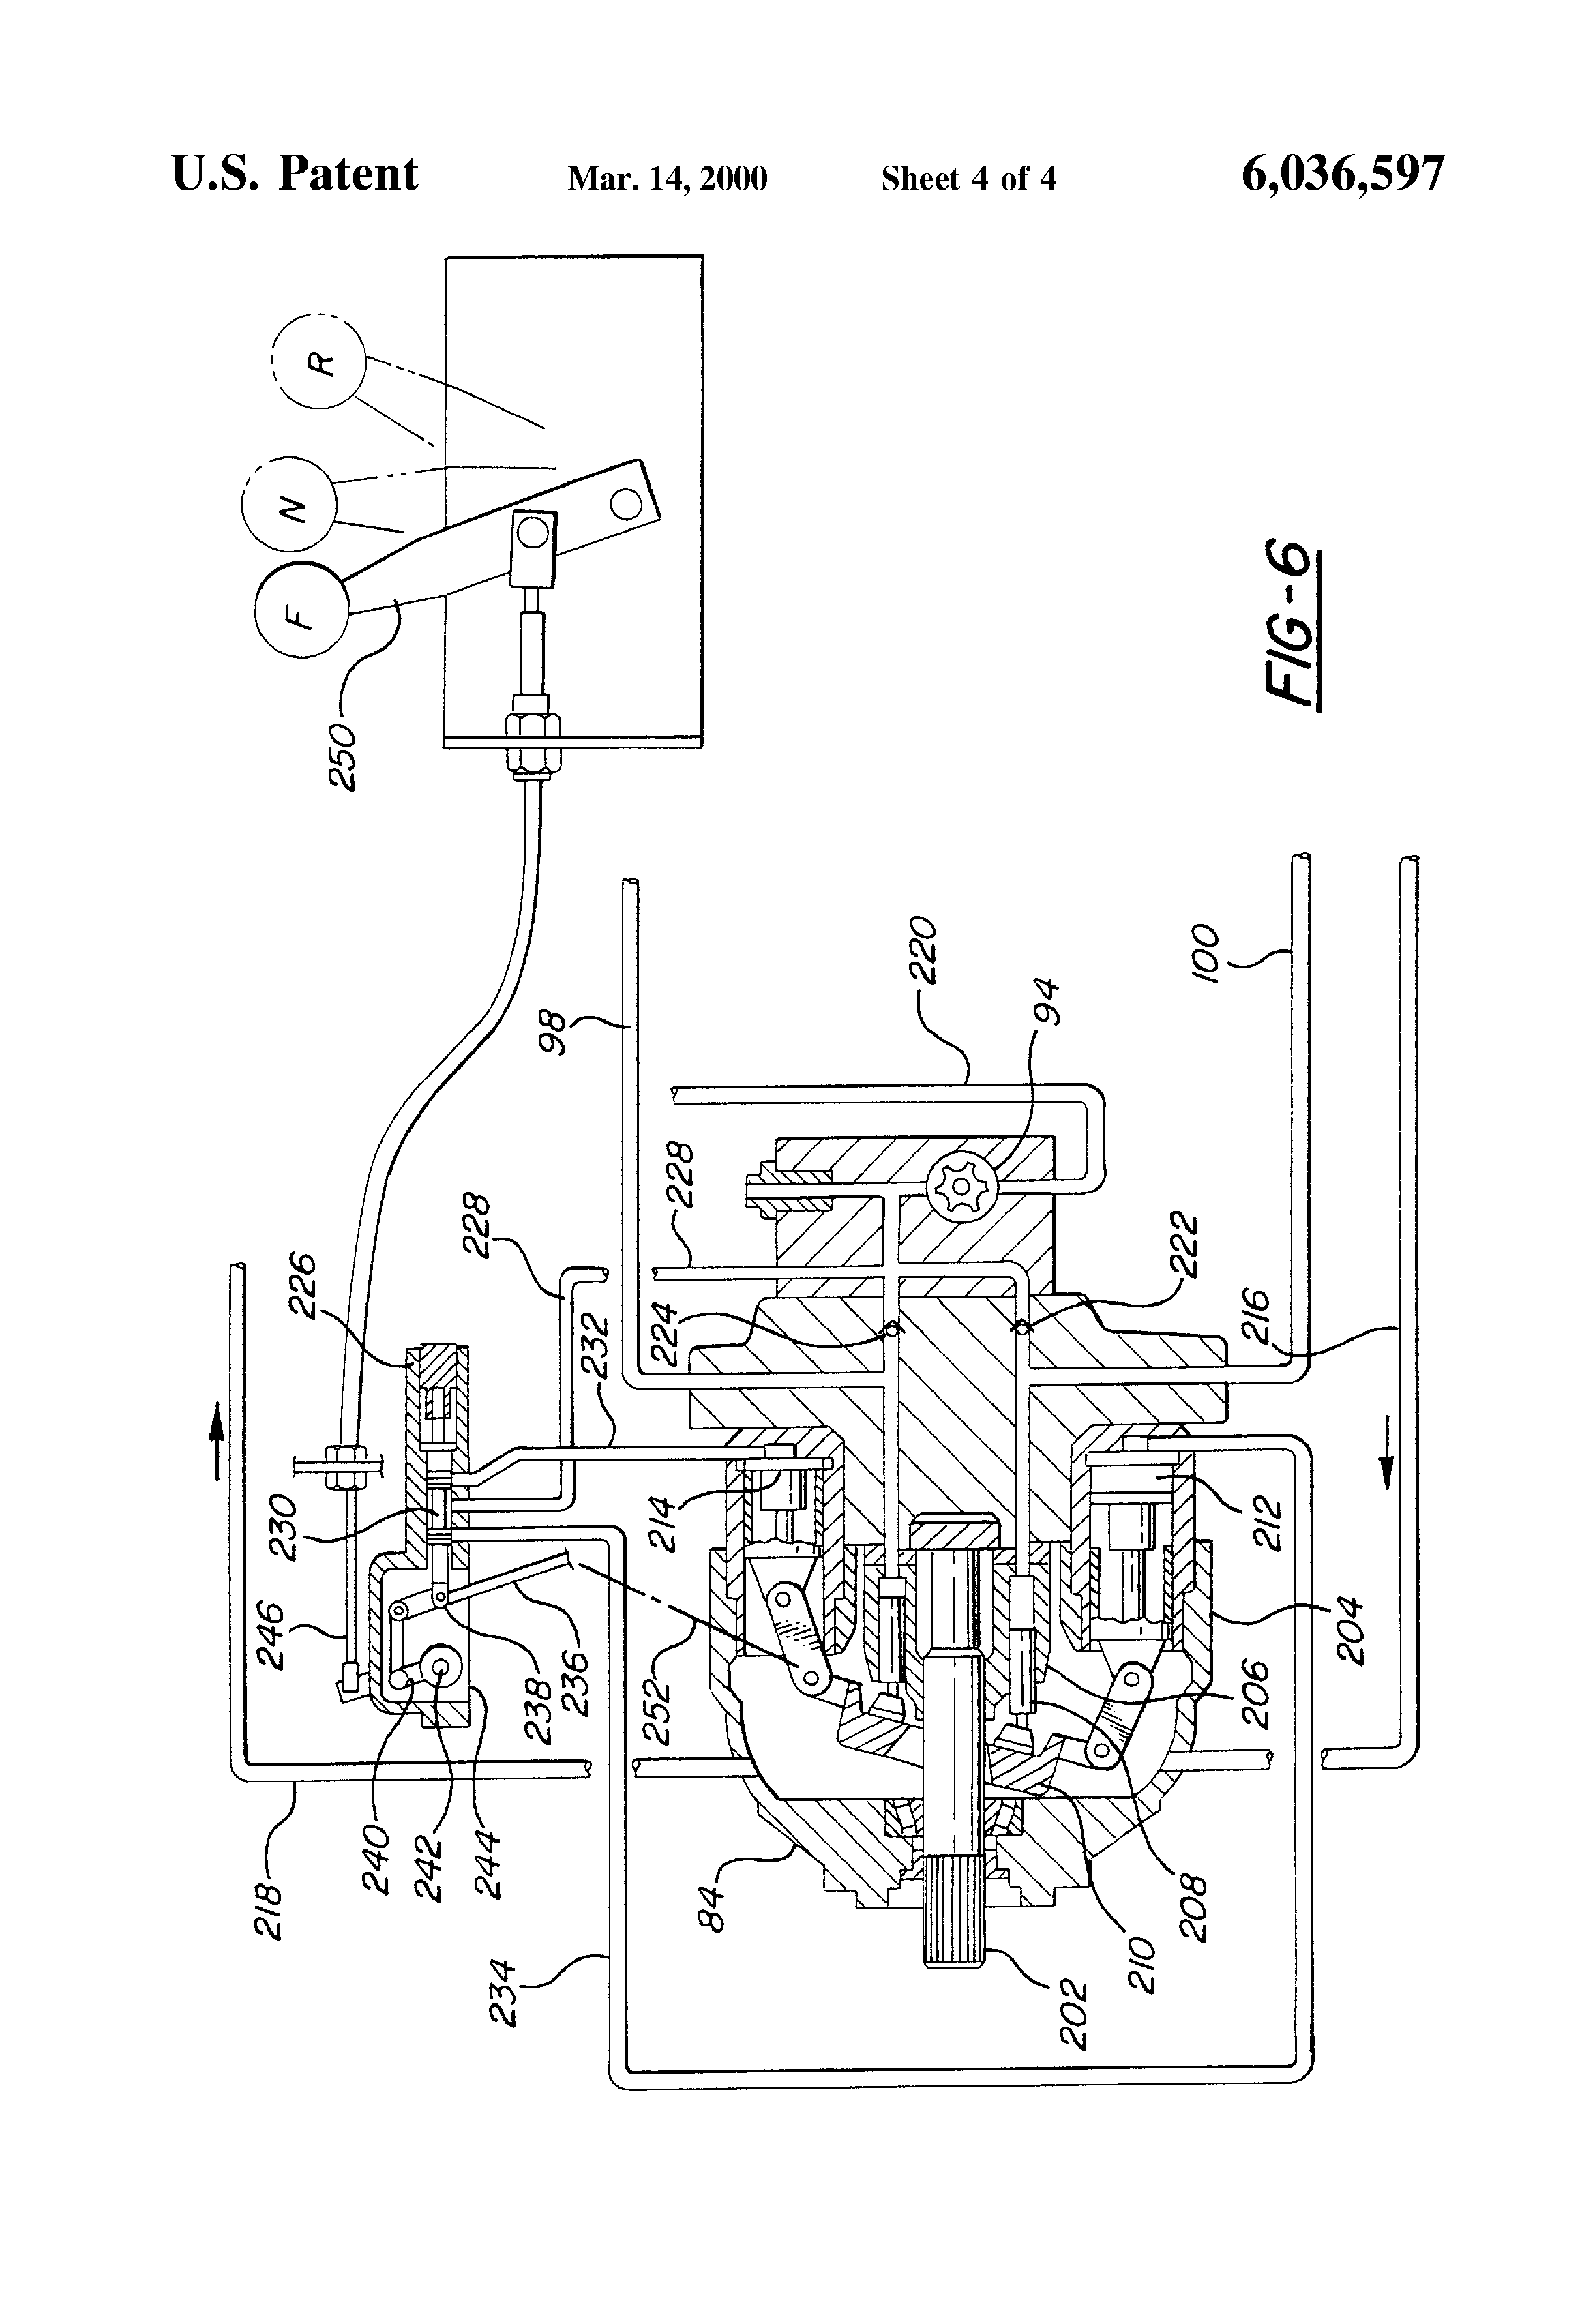 Schematic Diagram Of Combine Harvester : Patent us combine harvester rotor load control